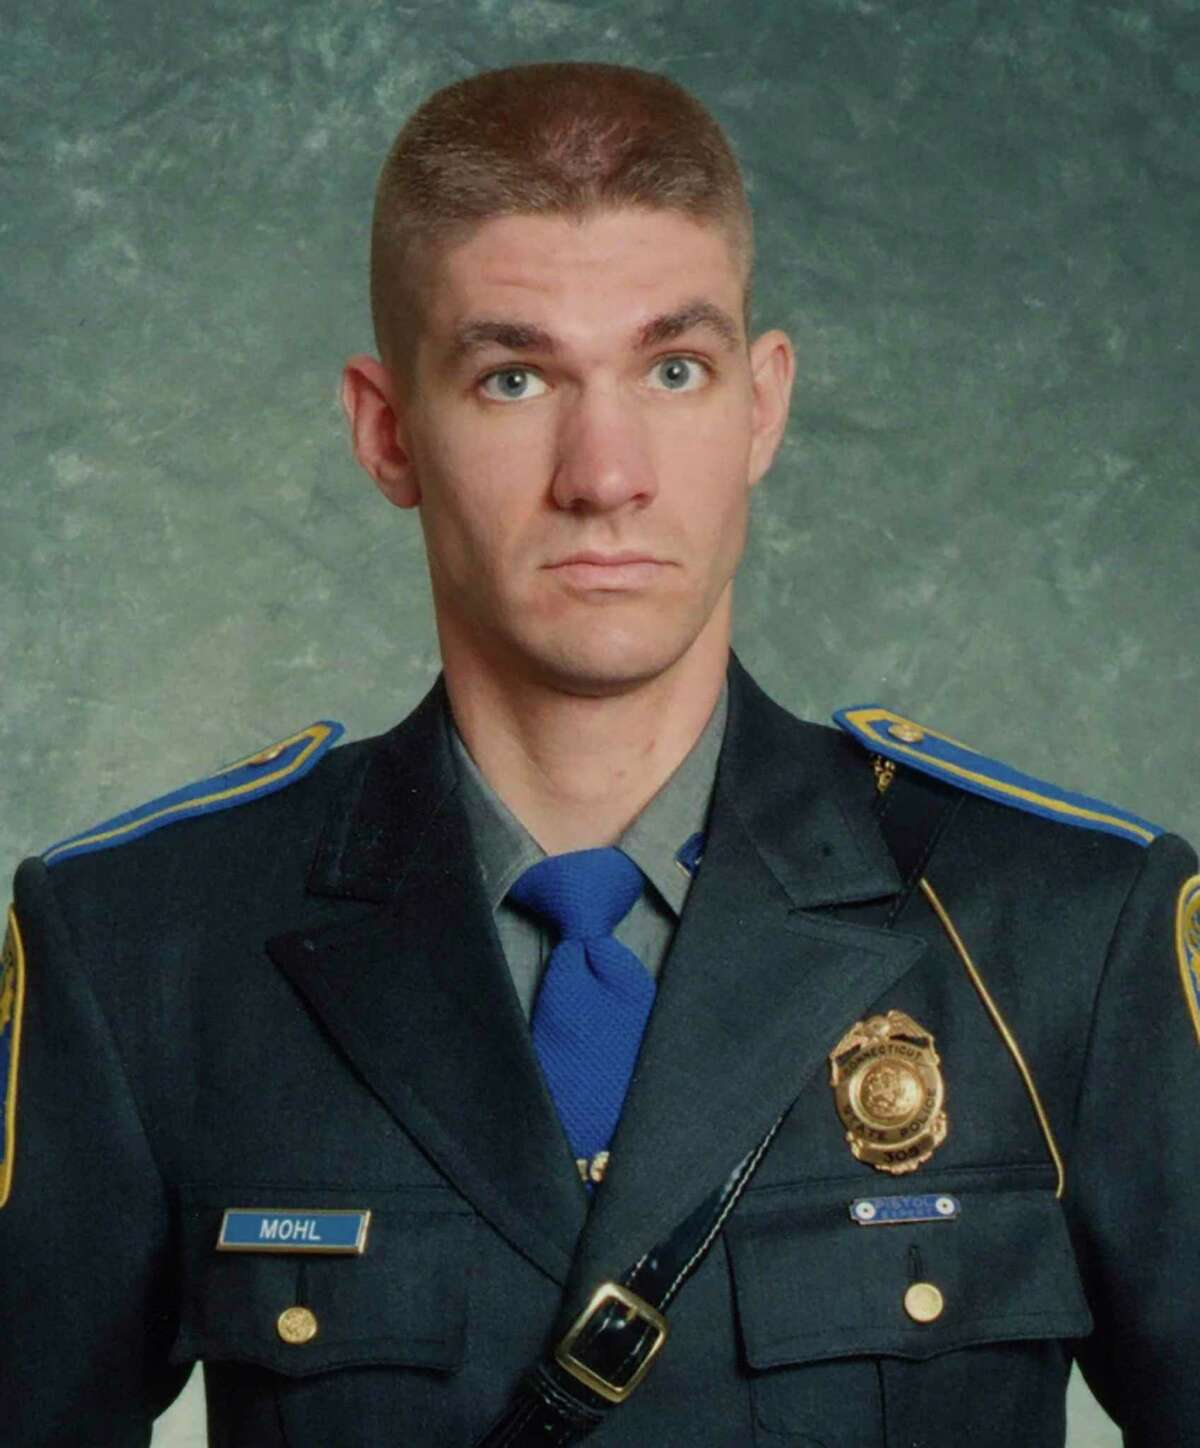 This undated photo provided by the Connecticut State Police shows Sgt. Brian Mohl, a 26-year veteran of their Woodbury department. Mohl called for help about 3:30 a.m. Thursday, Sept. 2, 2021. His cruiser had been swept away. Police searched the area with divers, helicopters, boats and drones. After daybreak, they found his body in the swollen river after the remnants of Hurricane Ida pummeled the Northeast with record-breaking rain that flooded roads and houses, killing dozens. (Connecticut State Police via AP)